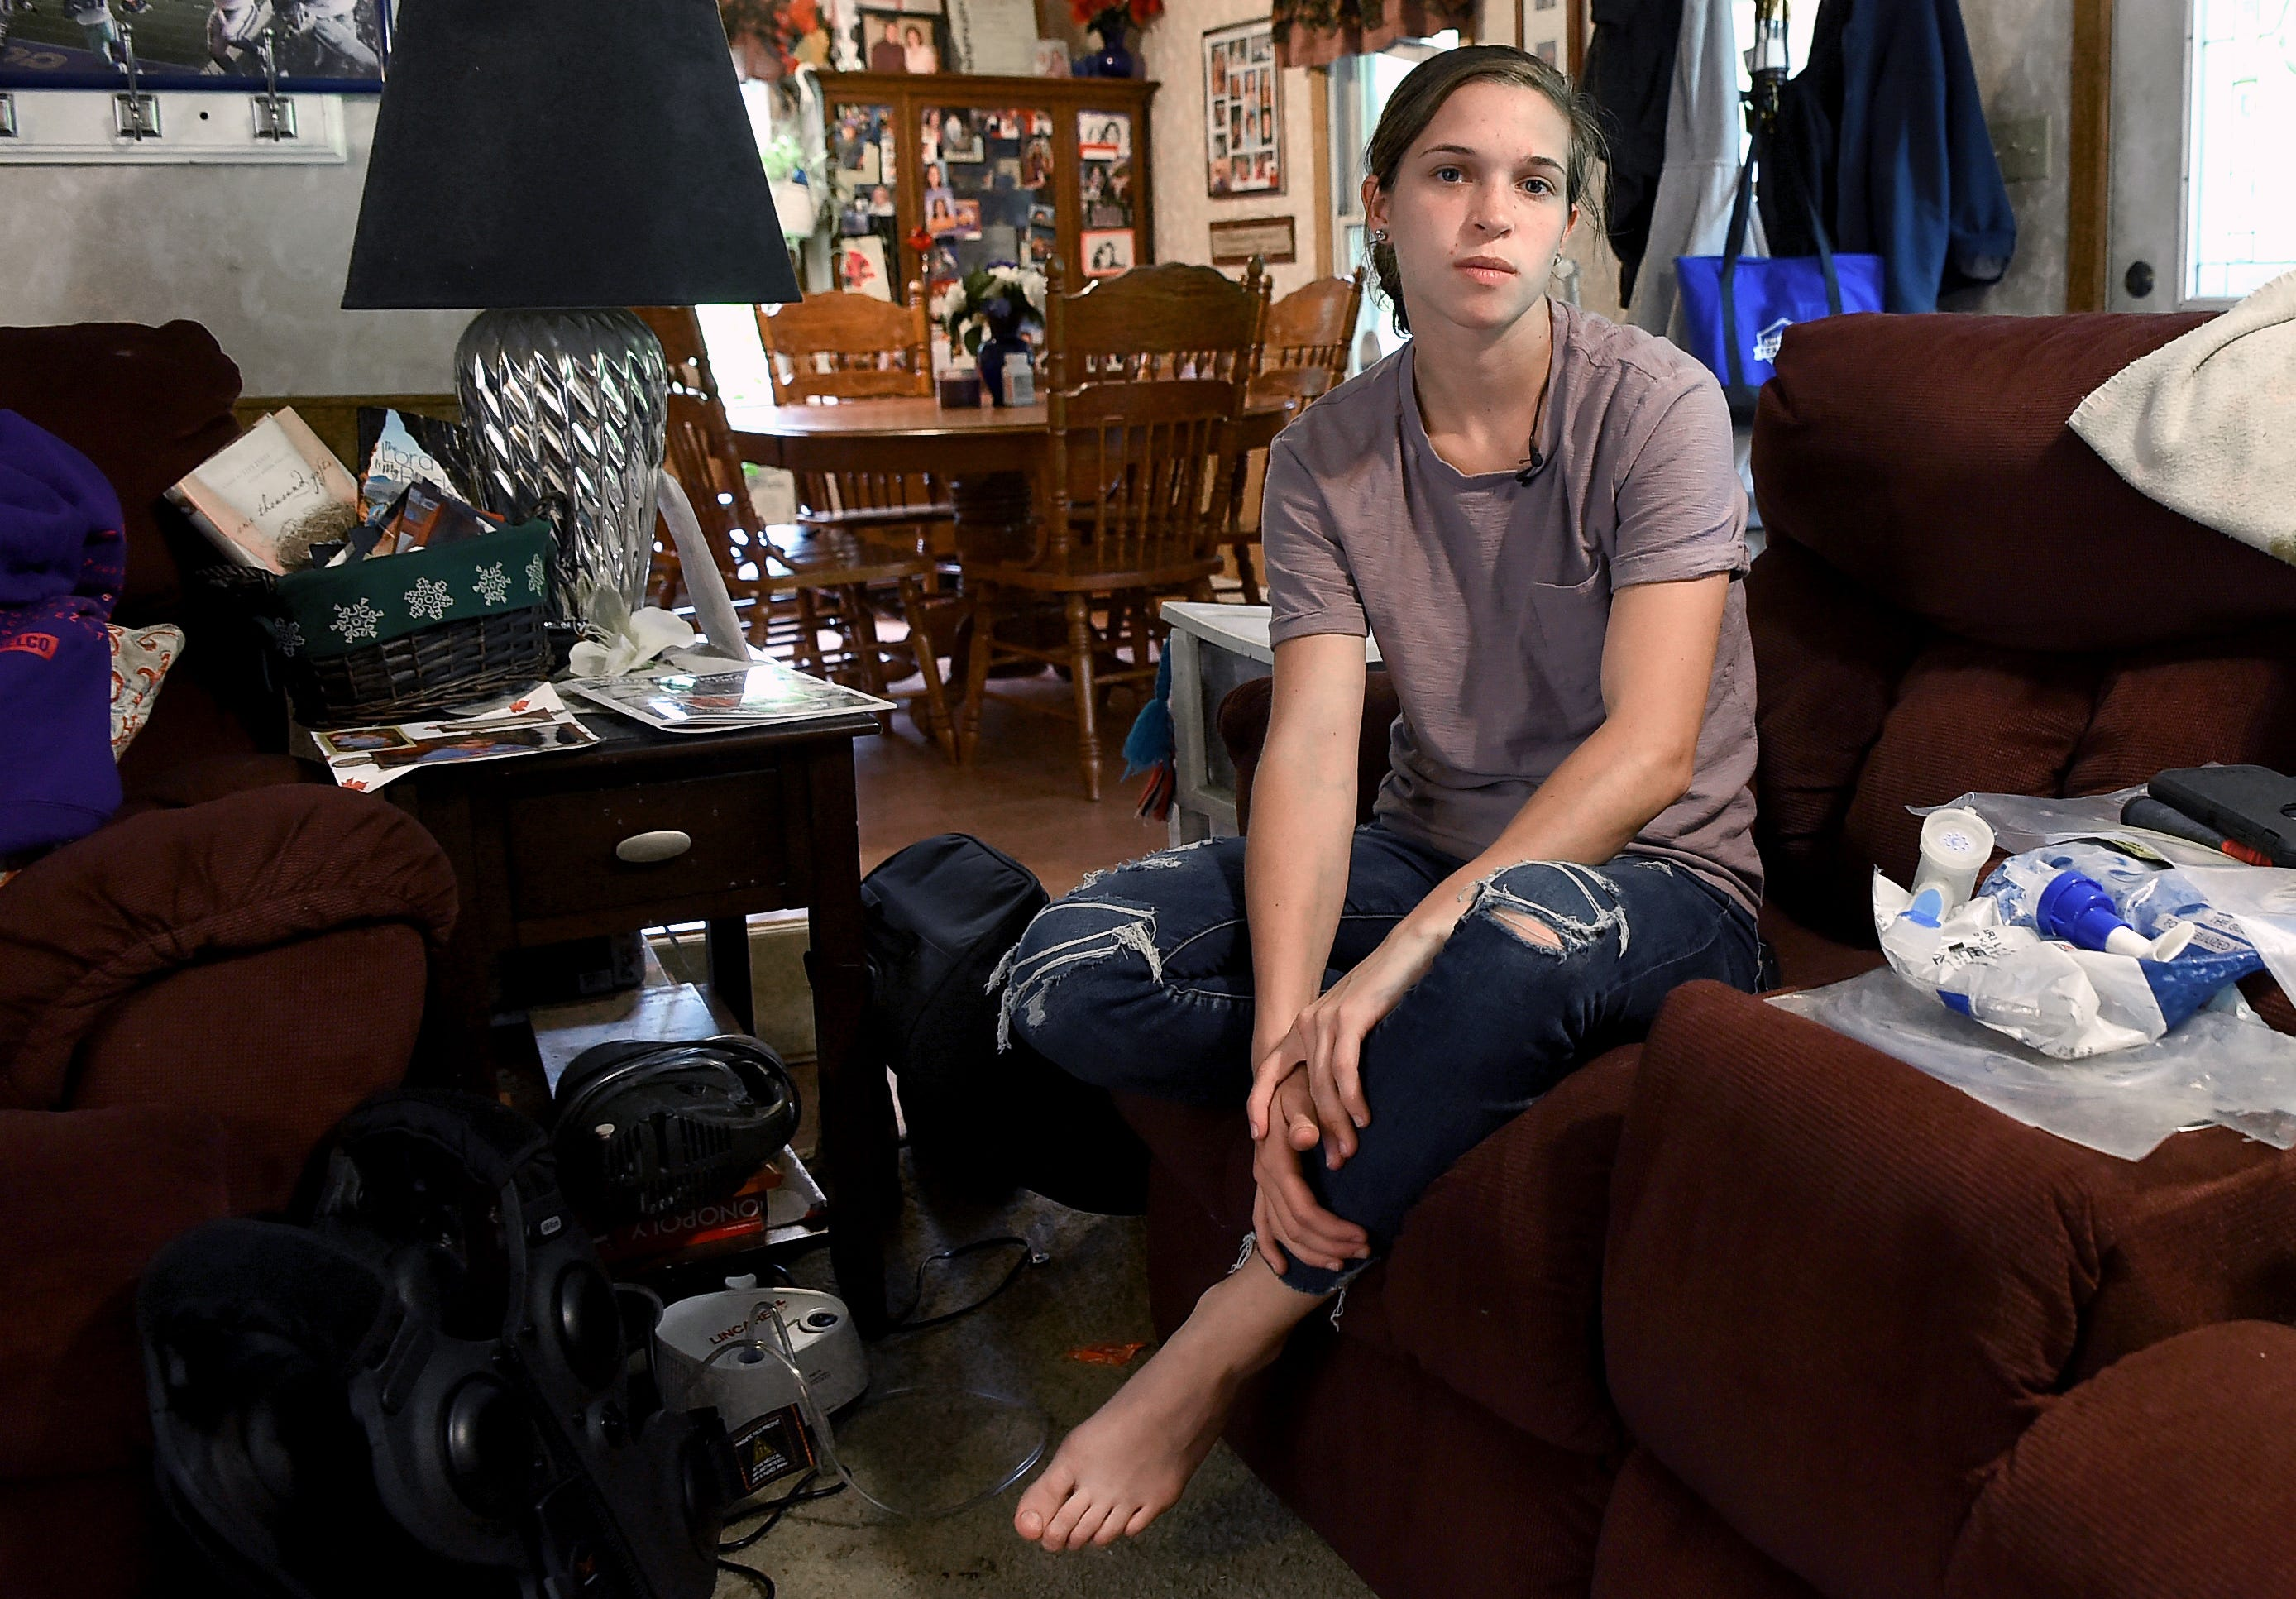 Emily Brown in her family's East Branch home on Tuesday, May 28, 2019. Diagnosed with with cystic fibrosis as a toddler, Emily must take 60 medications daily. Twice a day, she uses a $25,000 treatment vest to shake loose the excess mucus in her lungs.